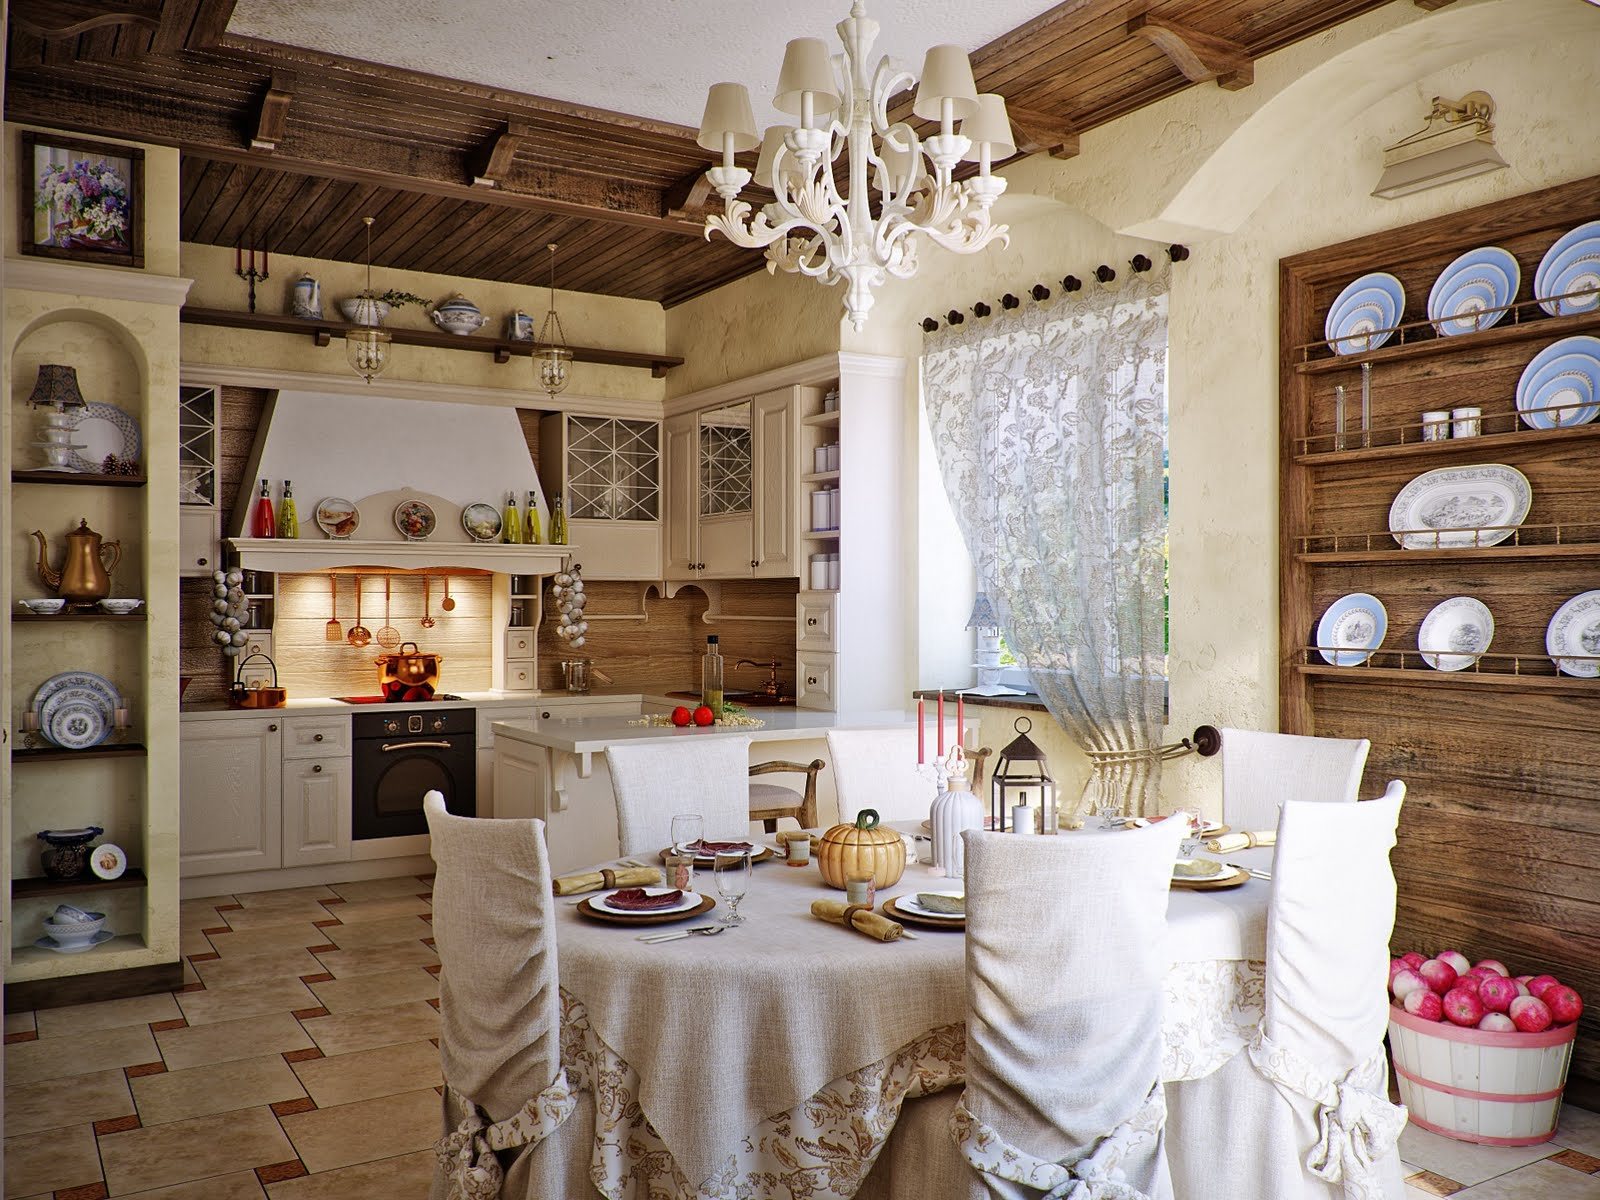 attractive country kitchen designs ideas that inspire you country kitchen design ideas awesome country kitchen design by Svetlana Nezus Interior Designs